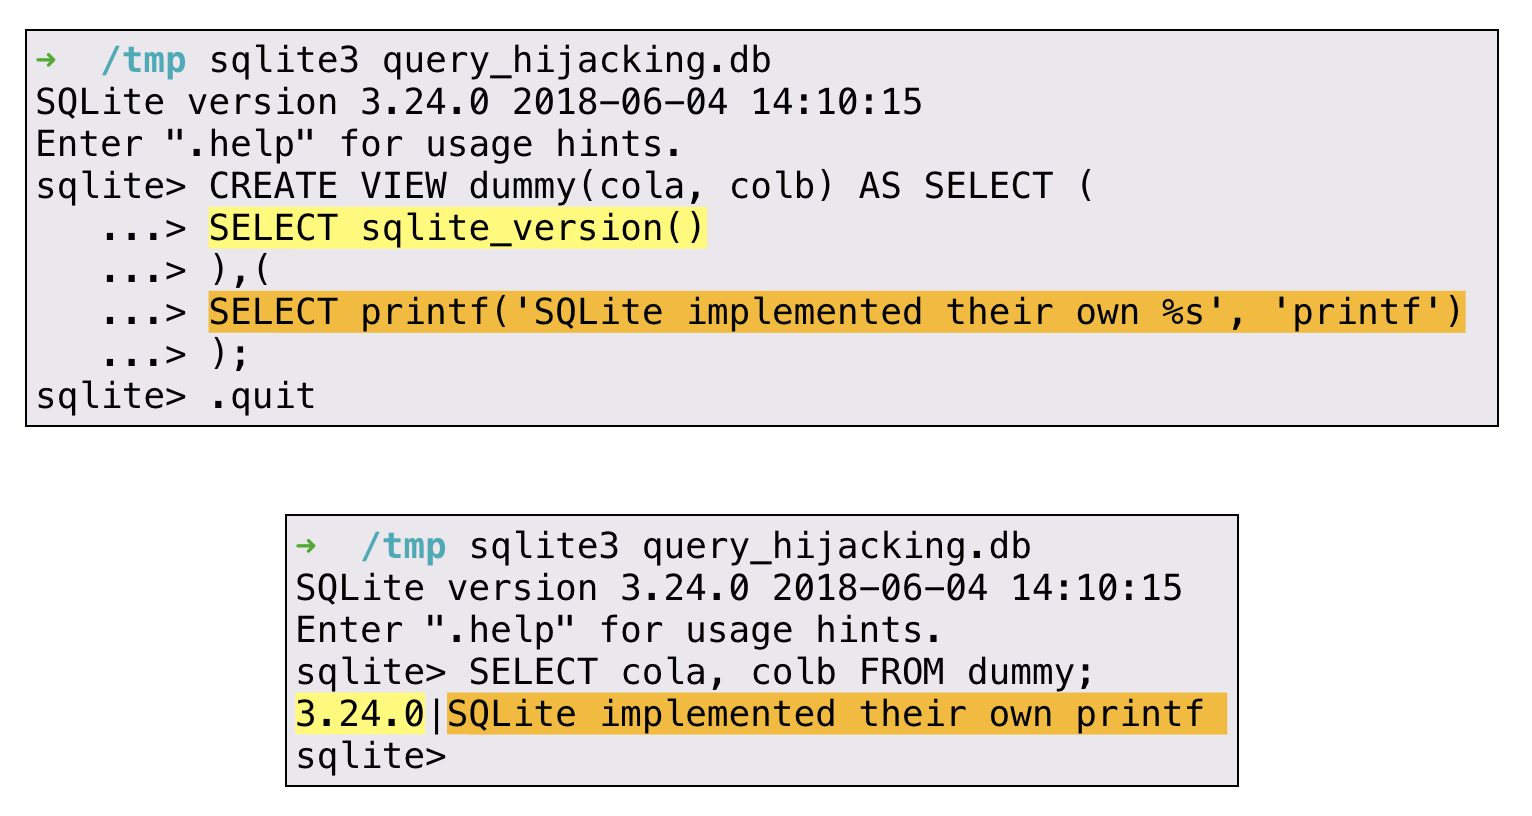 SELECT code_execution FROM * USING SQLite